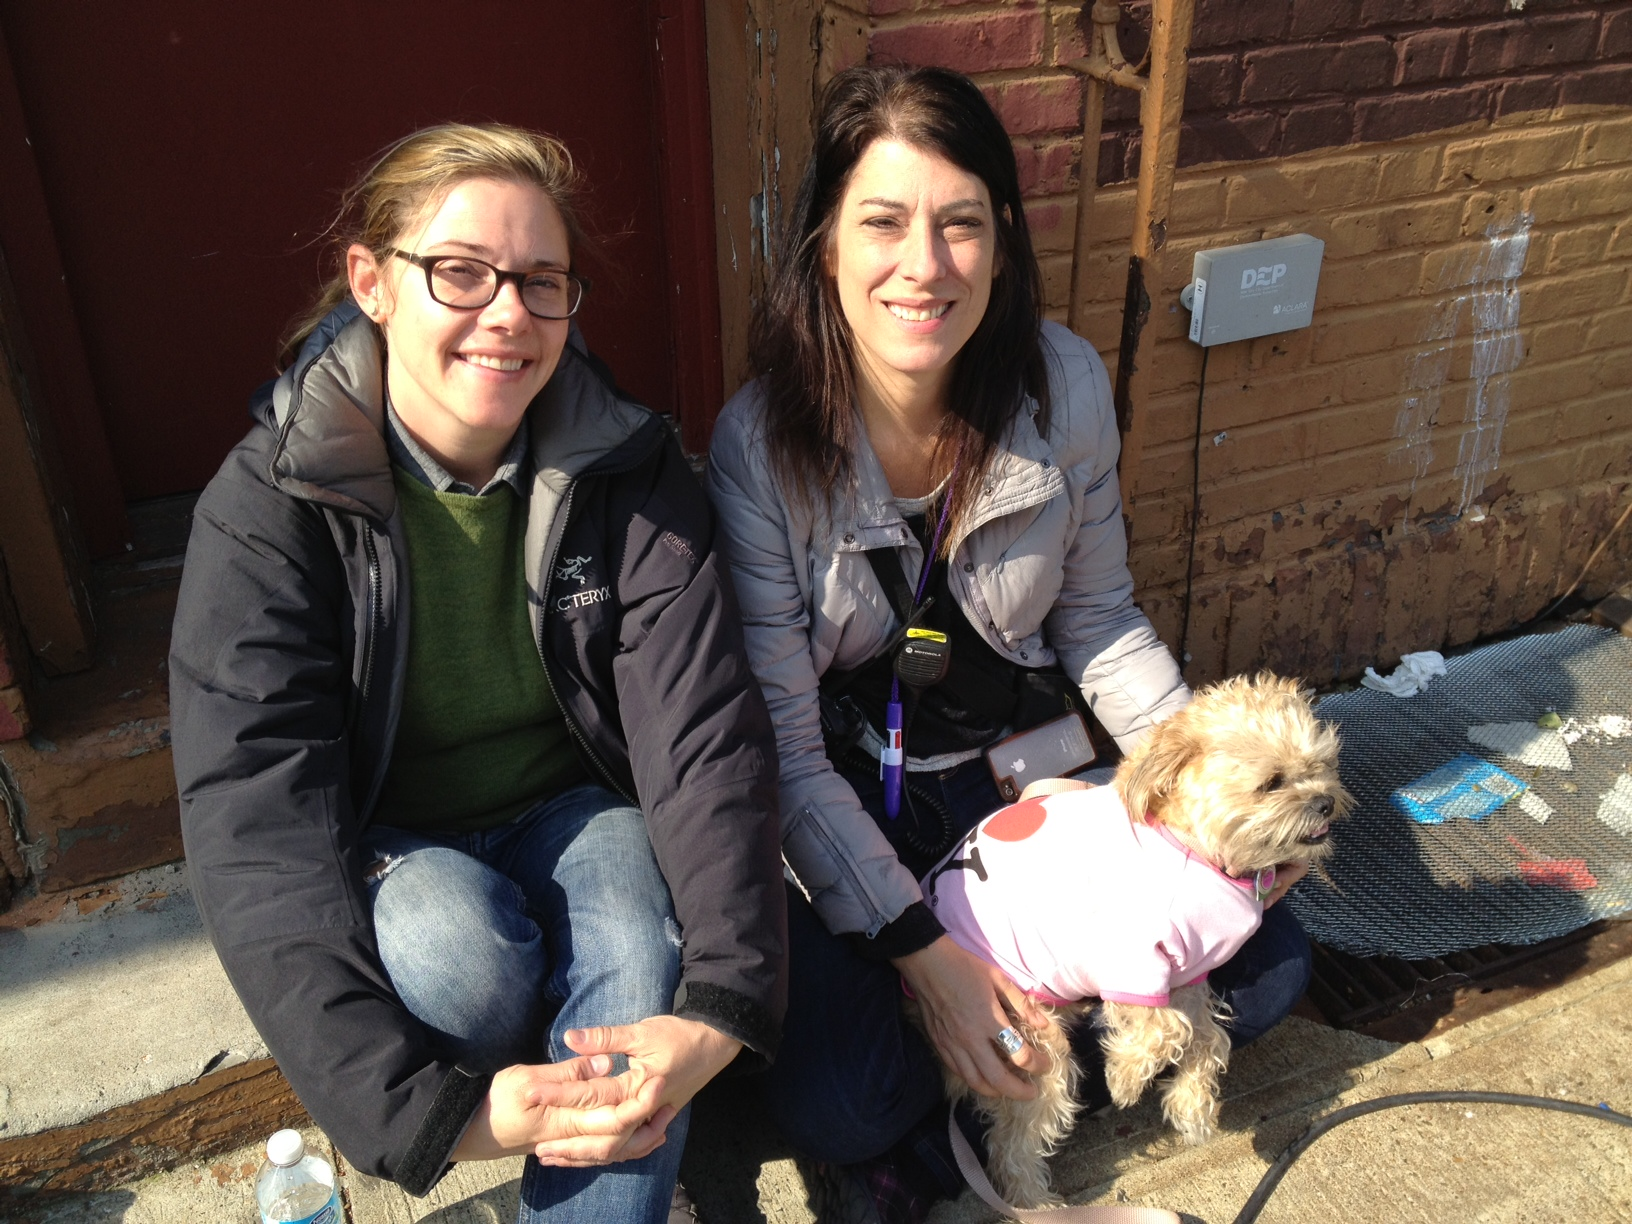 """Co-Producer Lynn Appelle (right) on the set of """"Rob the Mob"""" with 2nd AD Sarah Fairchild & Bitsy (Lynn's dog, working as an extra that day) 